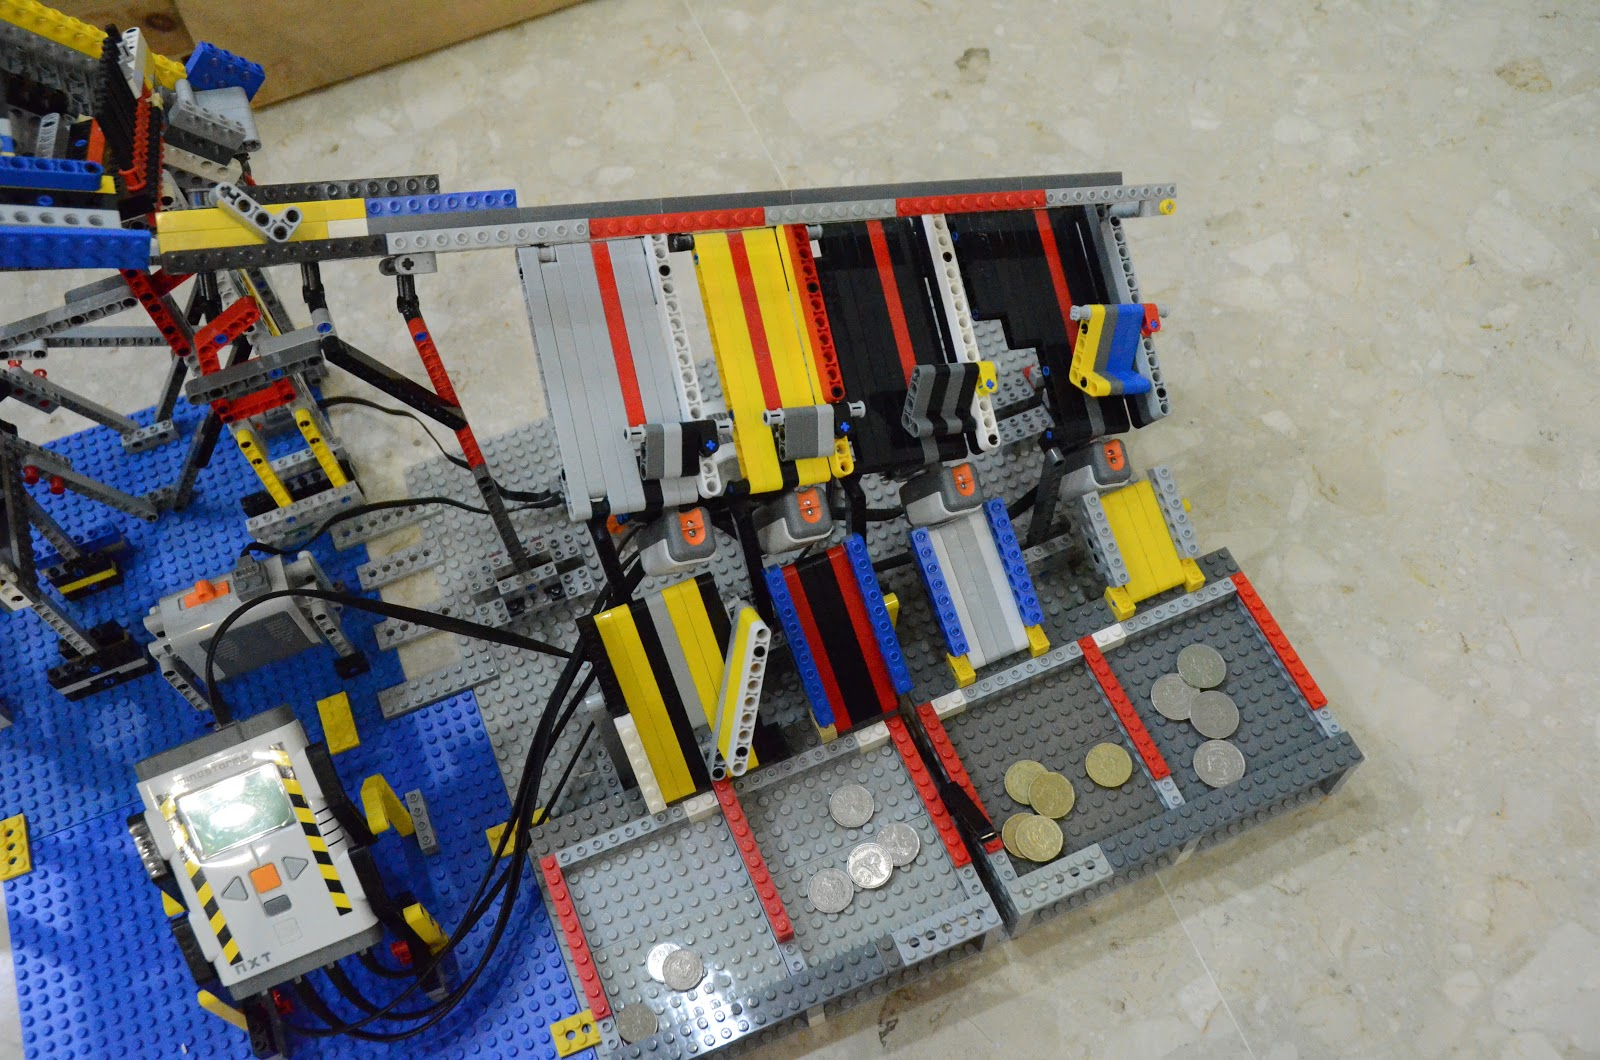 Exorus' Lego and Robotics: Project November: Lego ...